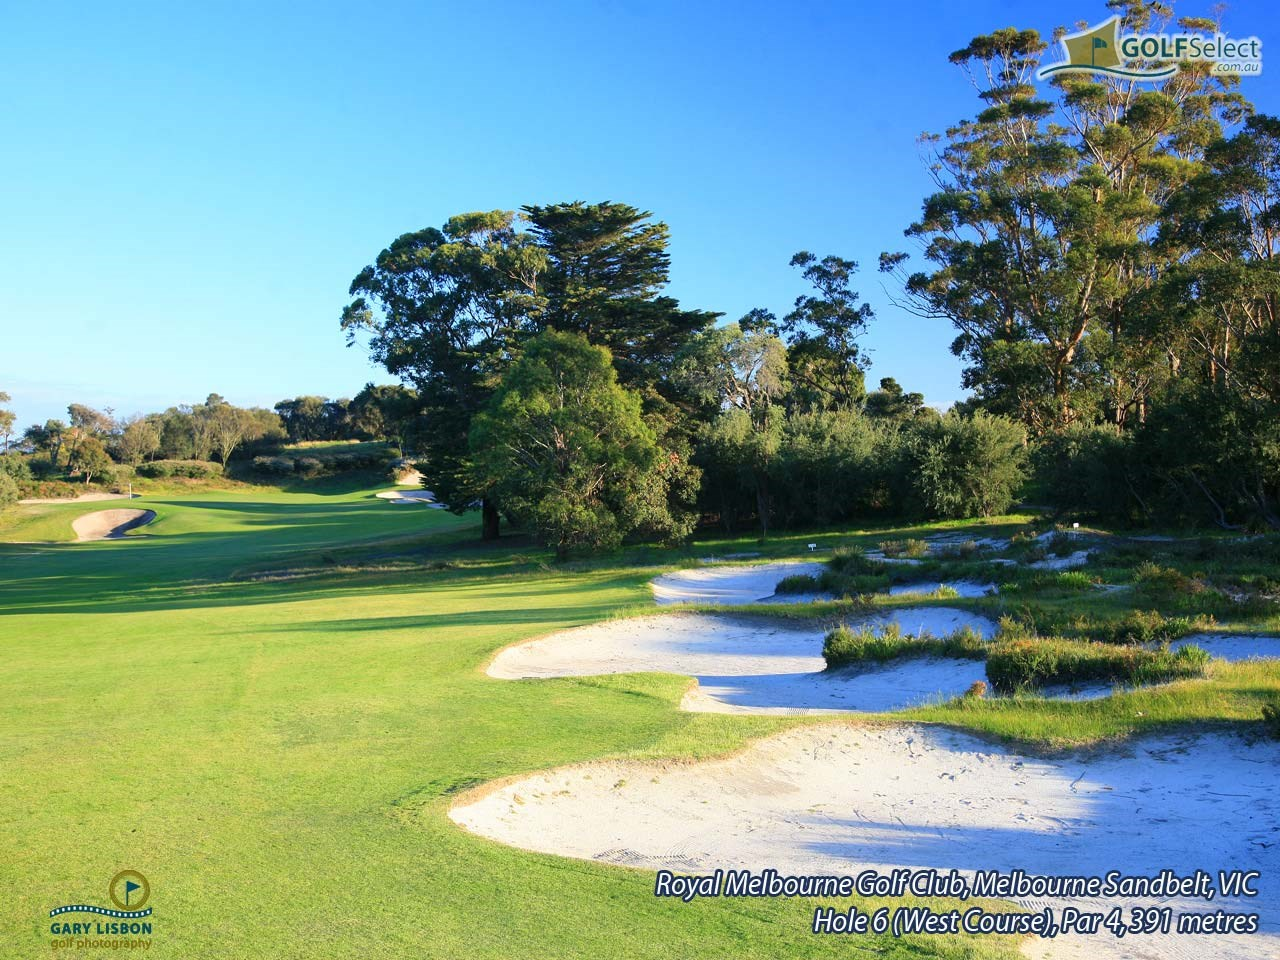 The Royal Melbourne GC (West Course) Hole 6, Par 4, 391 metres